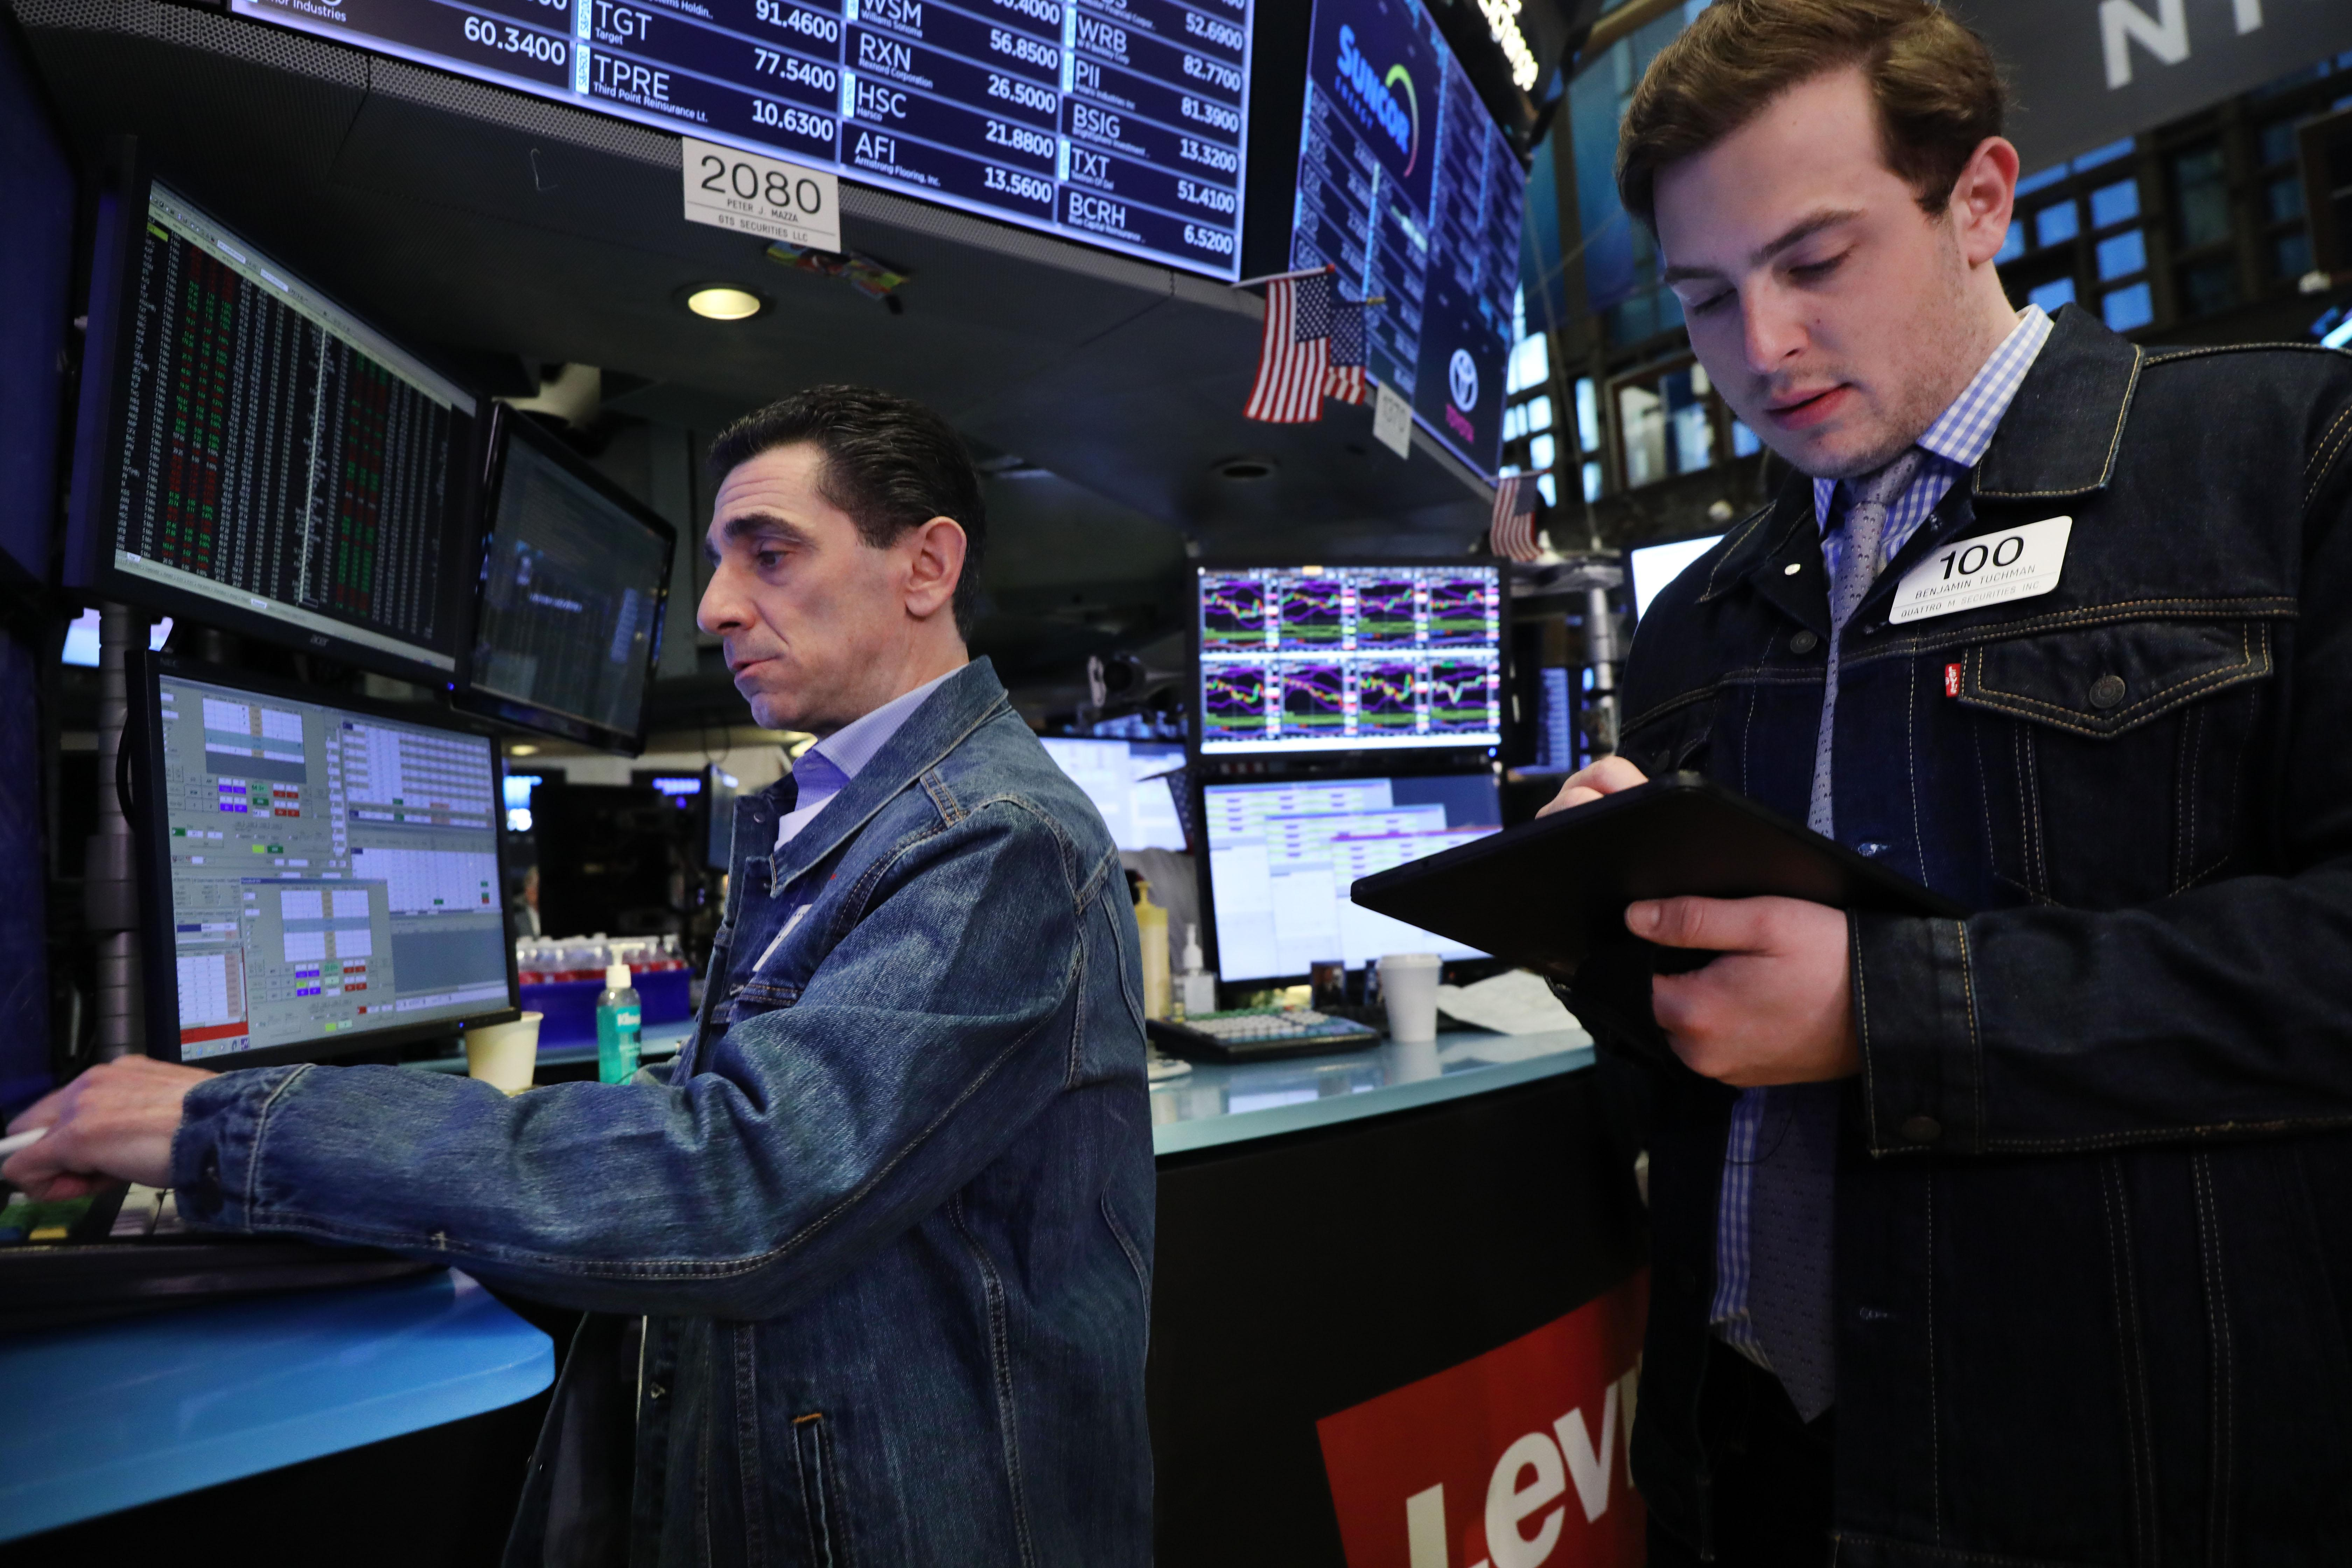 GettyImages-Stockmarket March 22